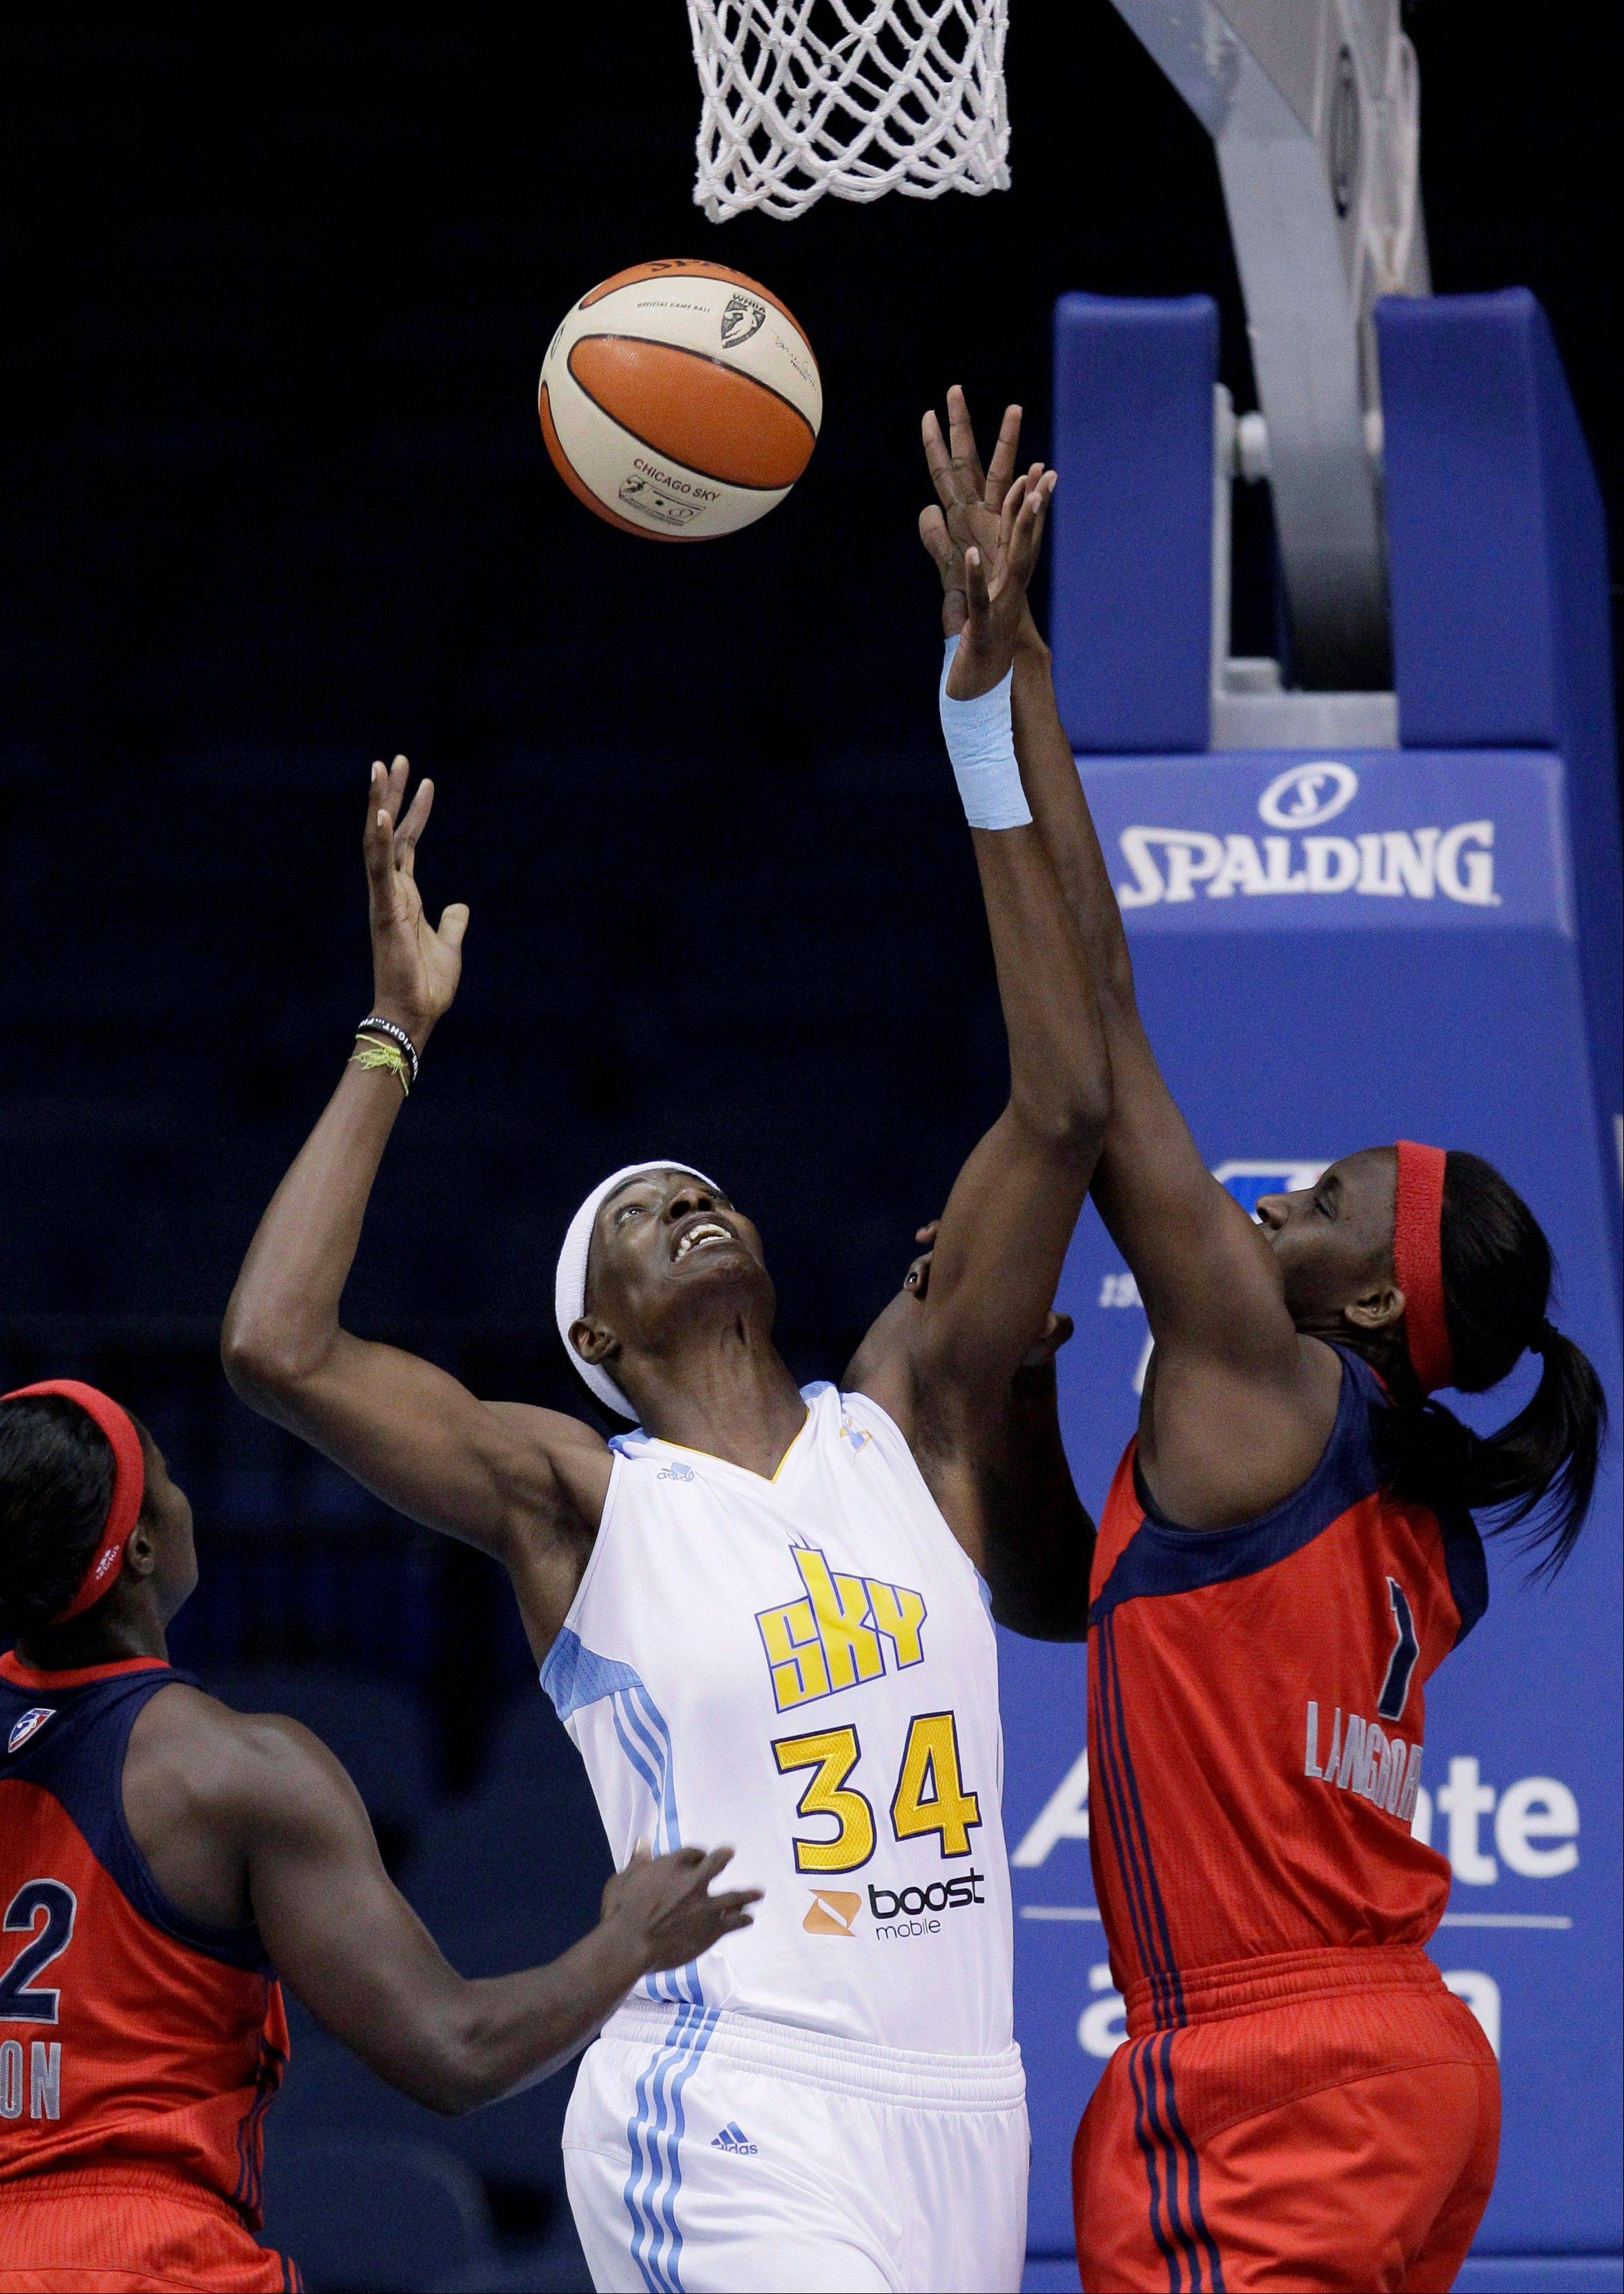 The Sky's Sylvia Fowles battles for a rebound with Matee Ajavon, left, and Crystal Langhorne of the Mystics on Friday.